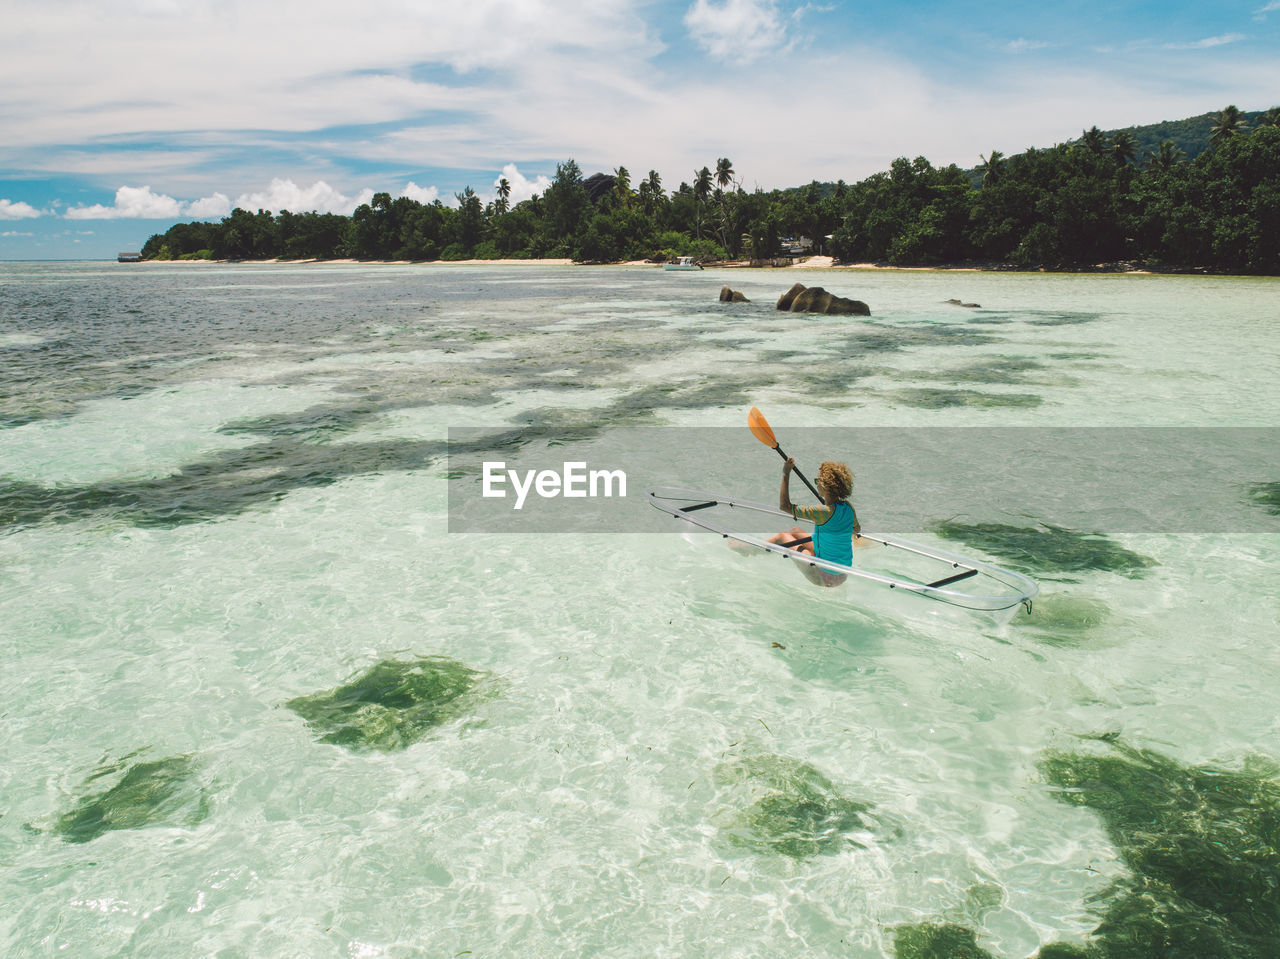 water, leisure activity, aquatic sport, one person, sport, sea, adventure, nautical vessel, waterfront, transportation, nature, kayak, motion, oar, day, lifestyles, extreme sports, sky, outdoors